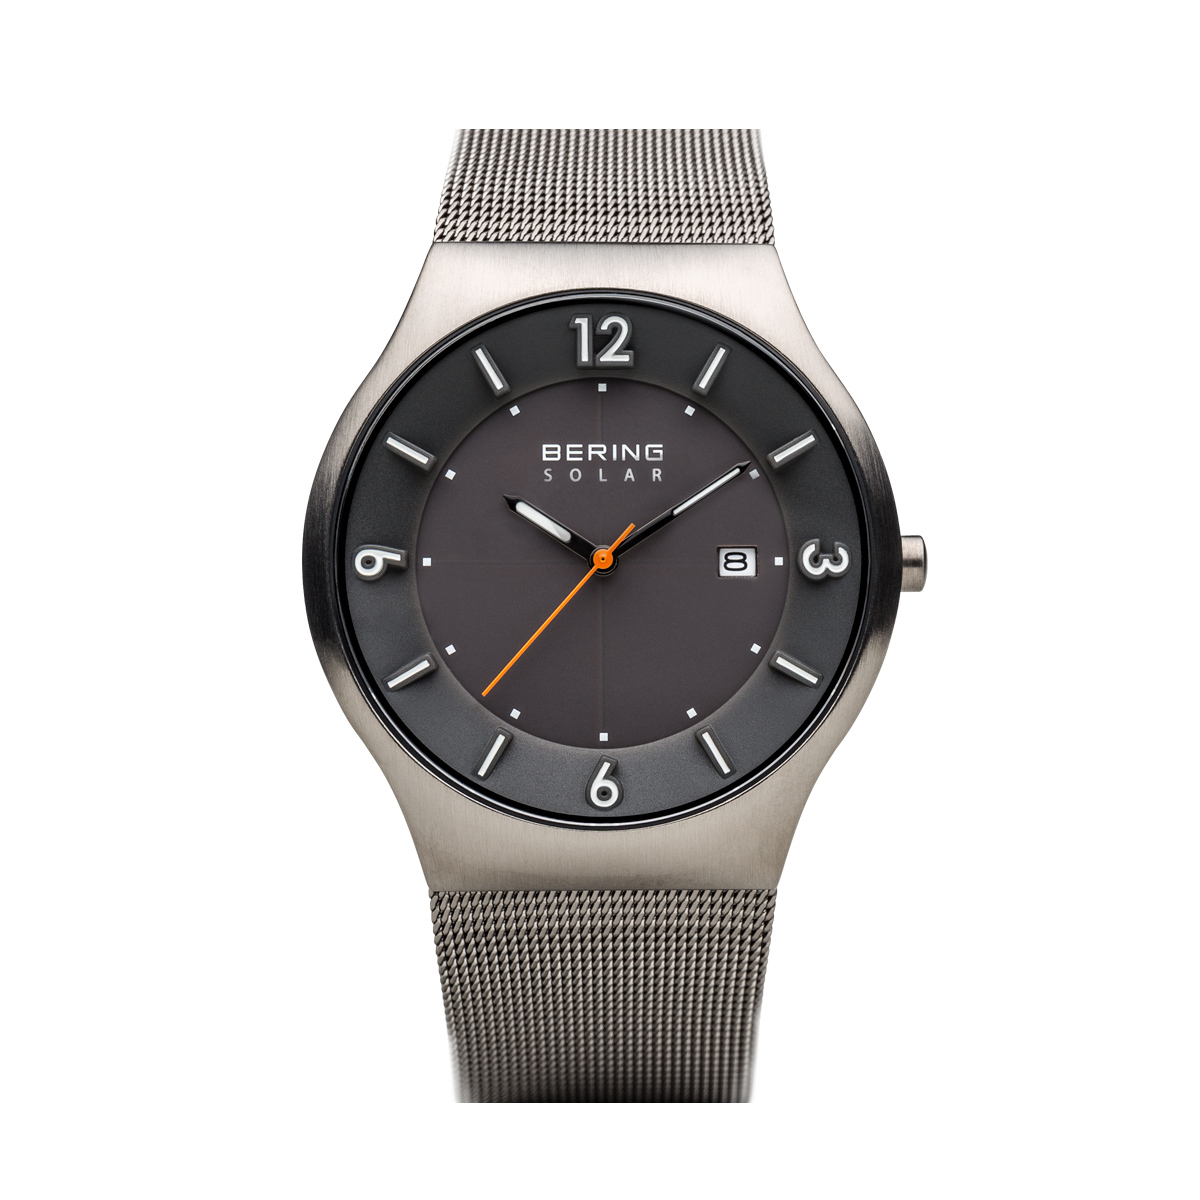 Solar | brushed grey | 14440-077 | BERING ® | Official Website | US Store